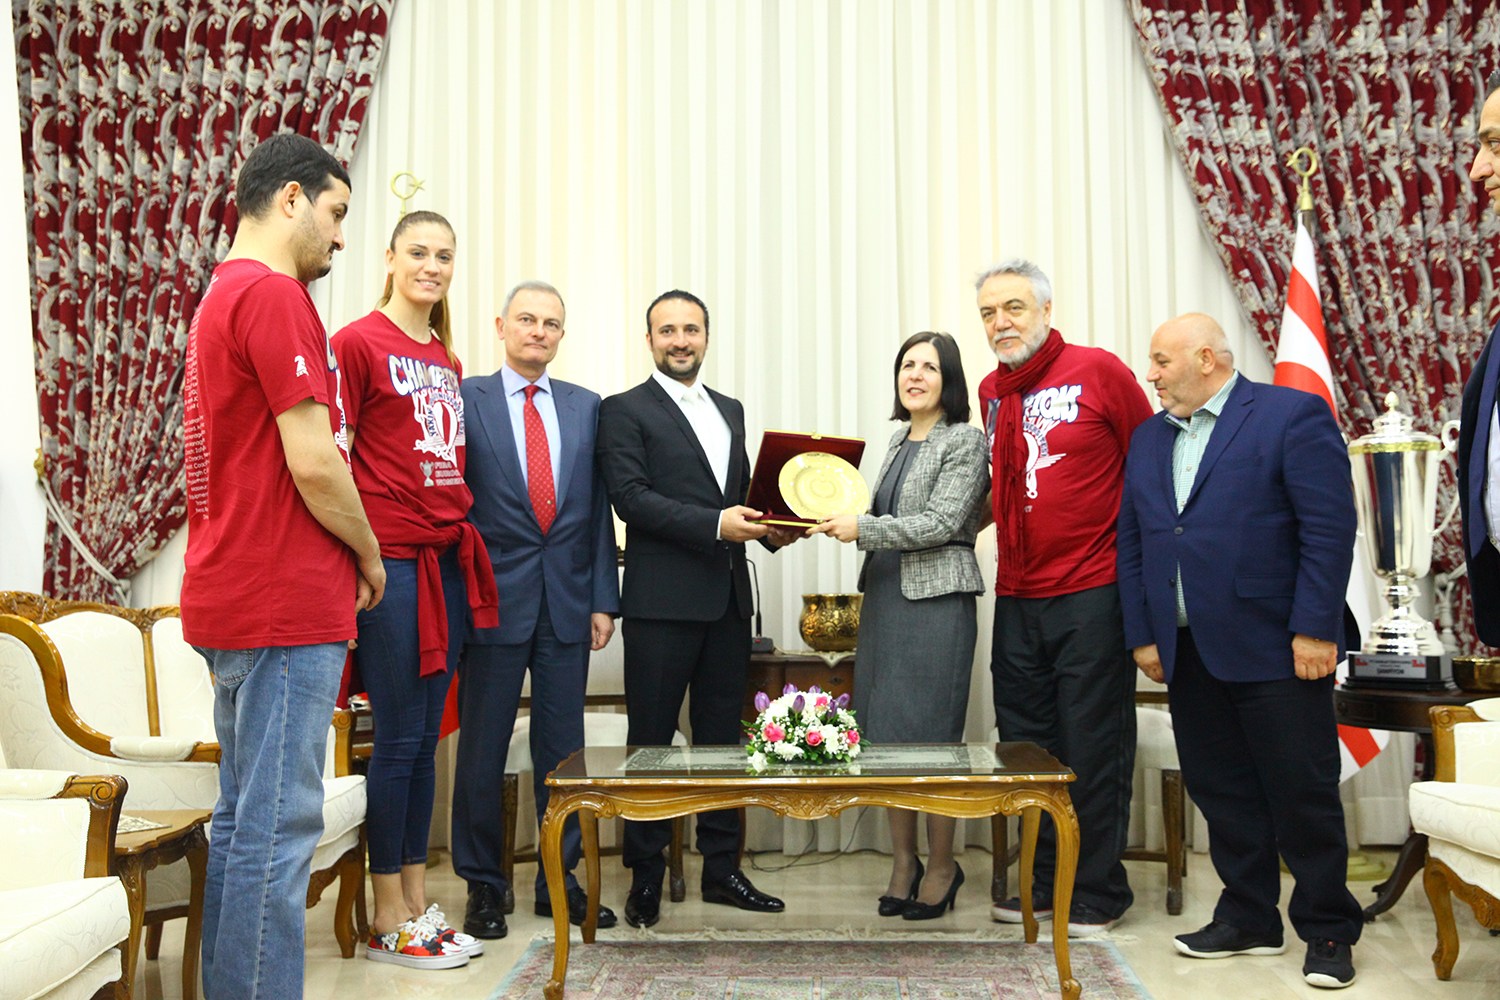 European Champion Near East University Women's Basketball Team met with cheers